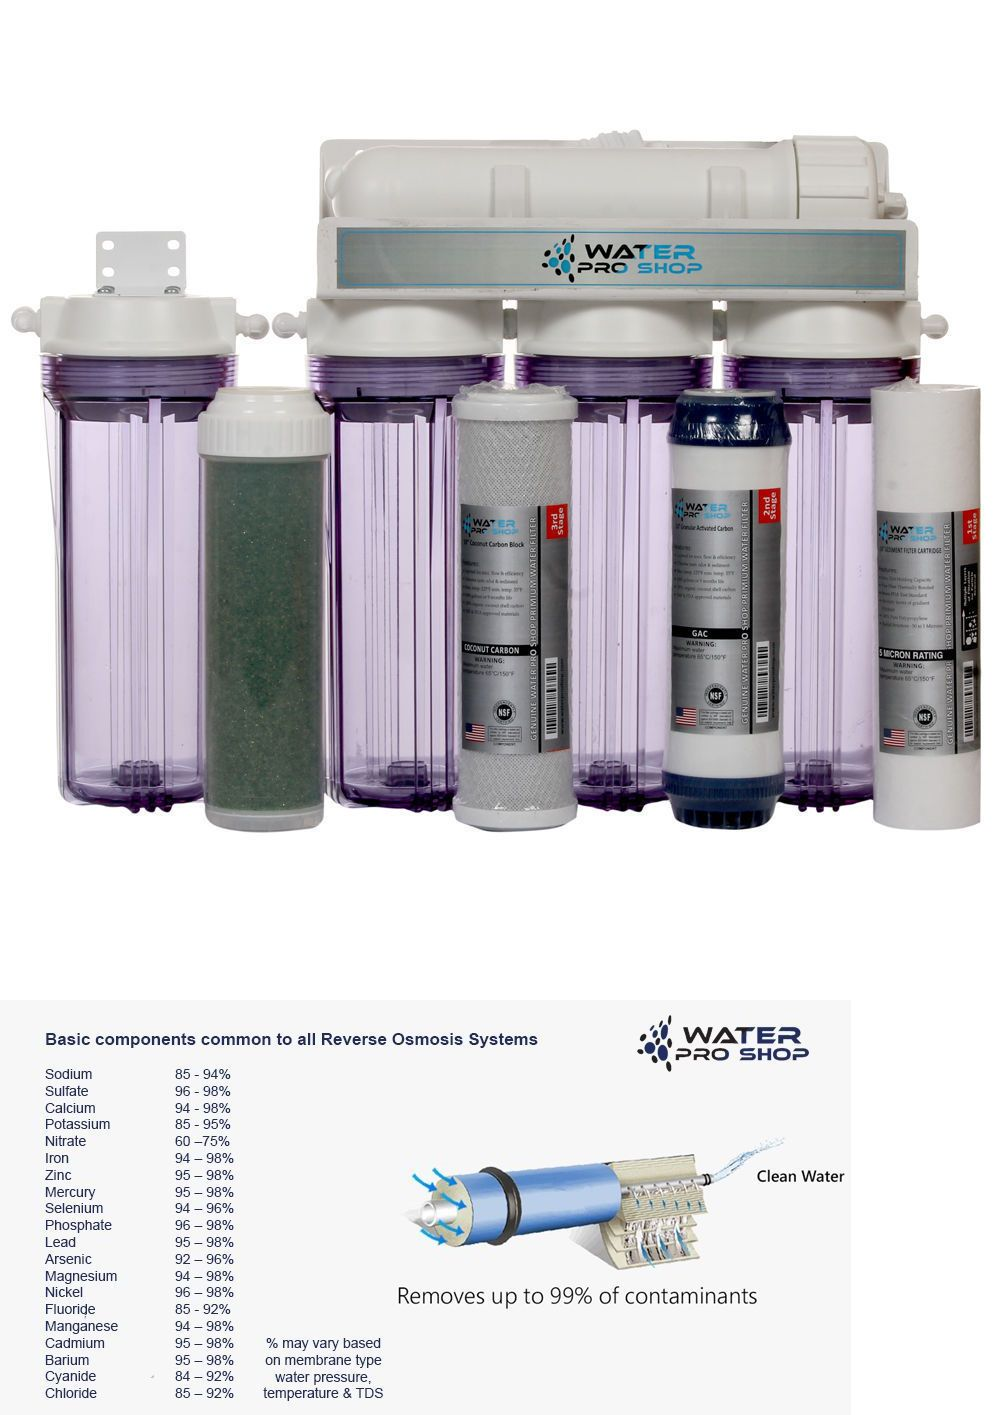 Reverse Osmosis and Deionization 77658: 5 Stage-Aquarium Reef Reverse Osmosis Water System (Ro/Di): 100 Gpd - Manual Kit BUY IT NOW ONLY: $119.99